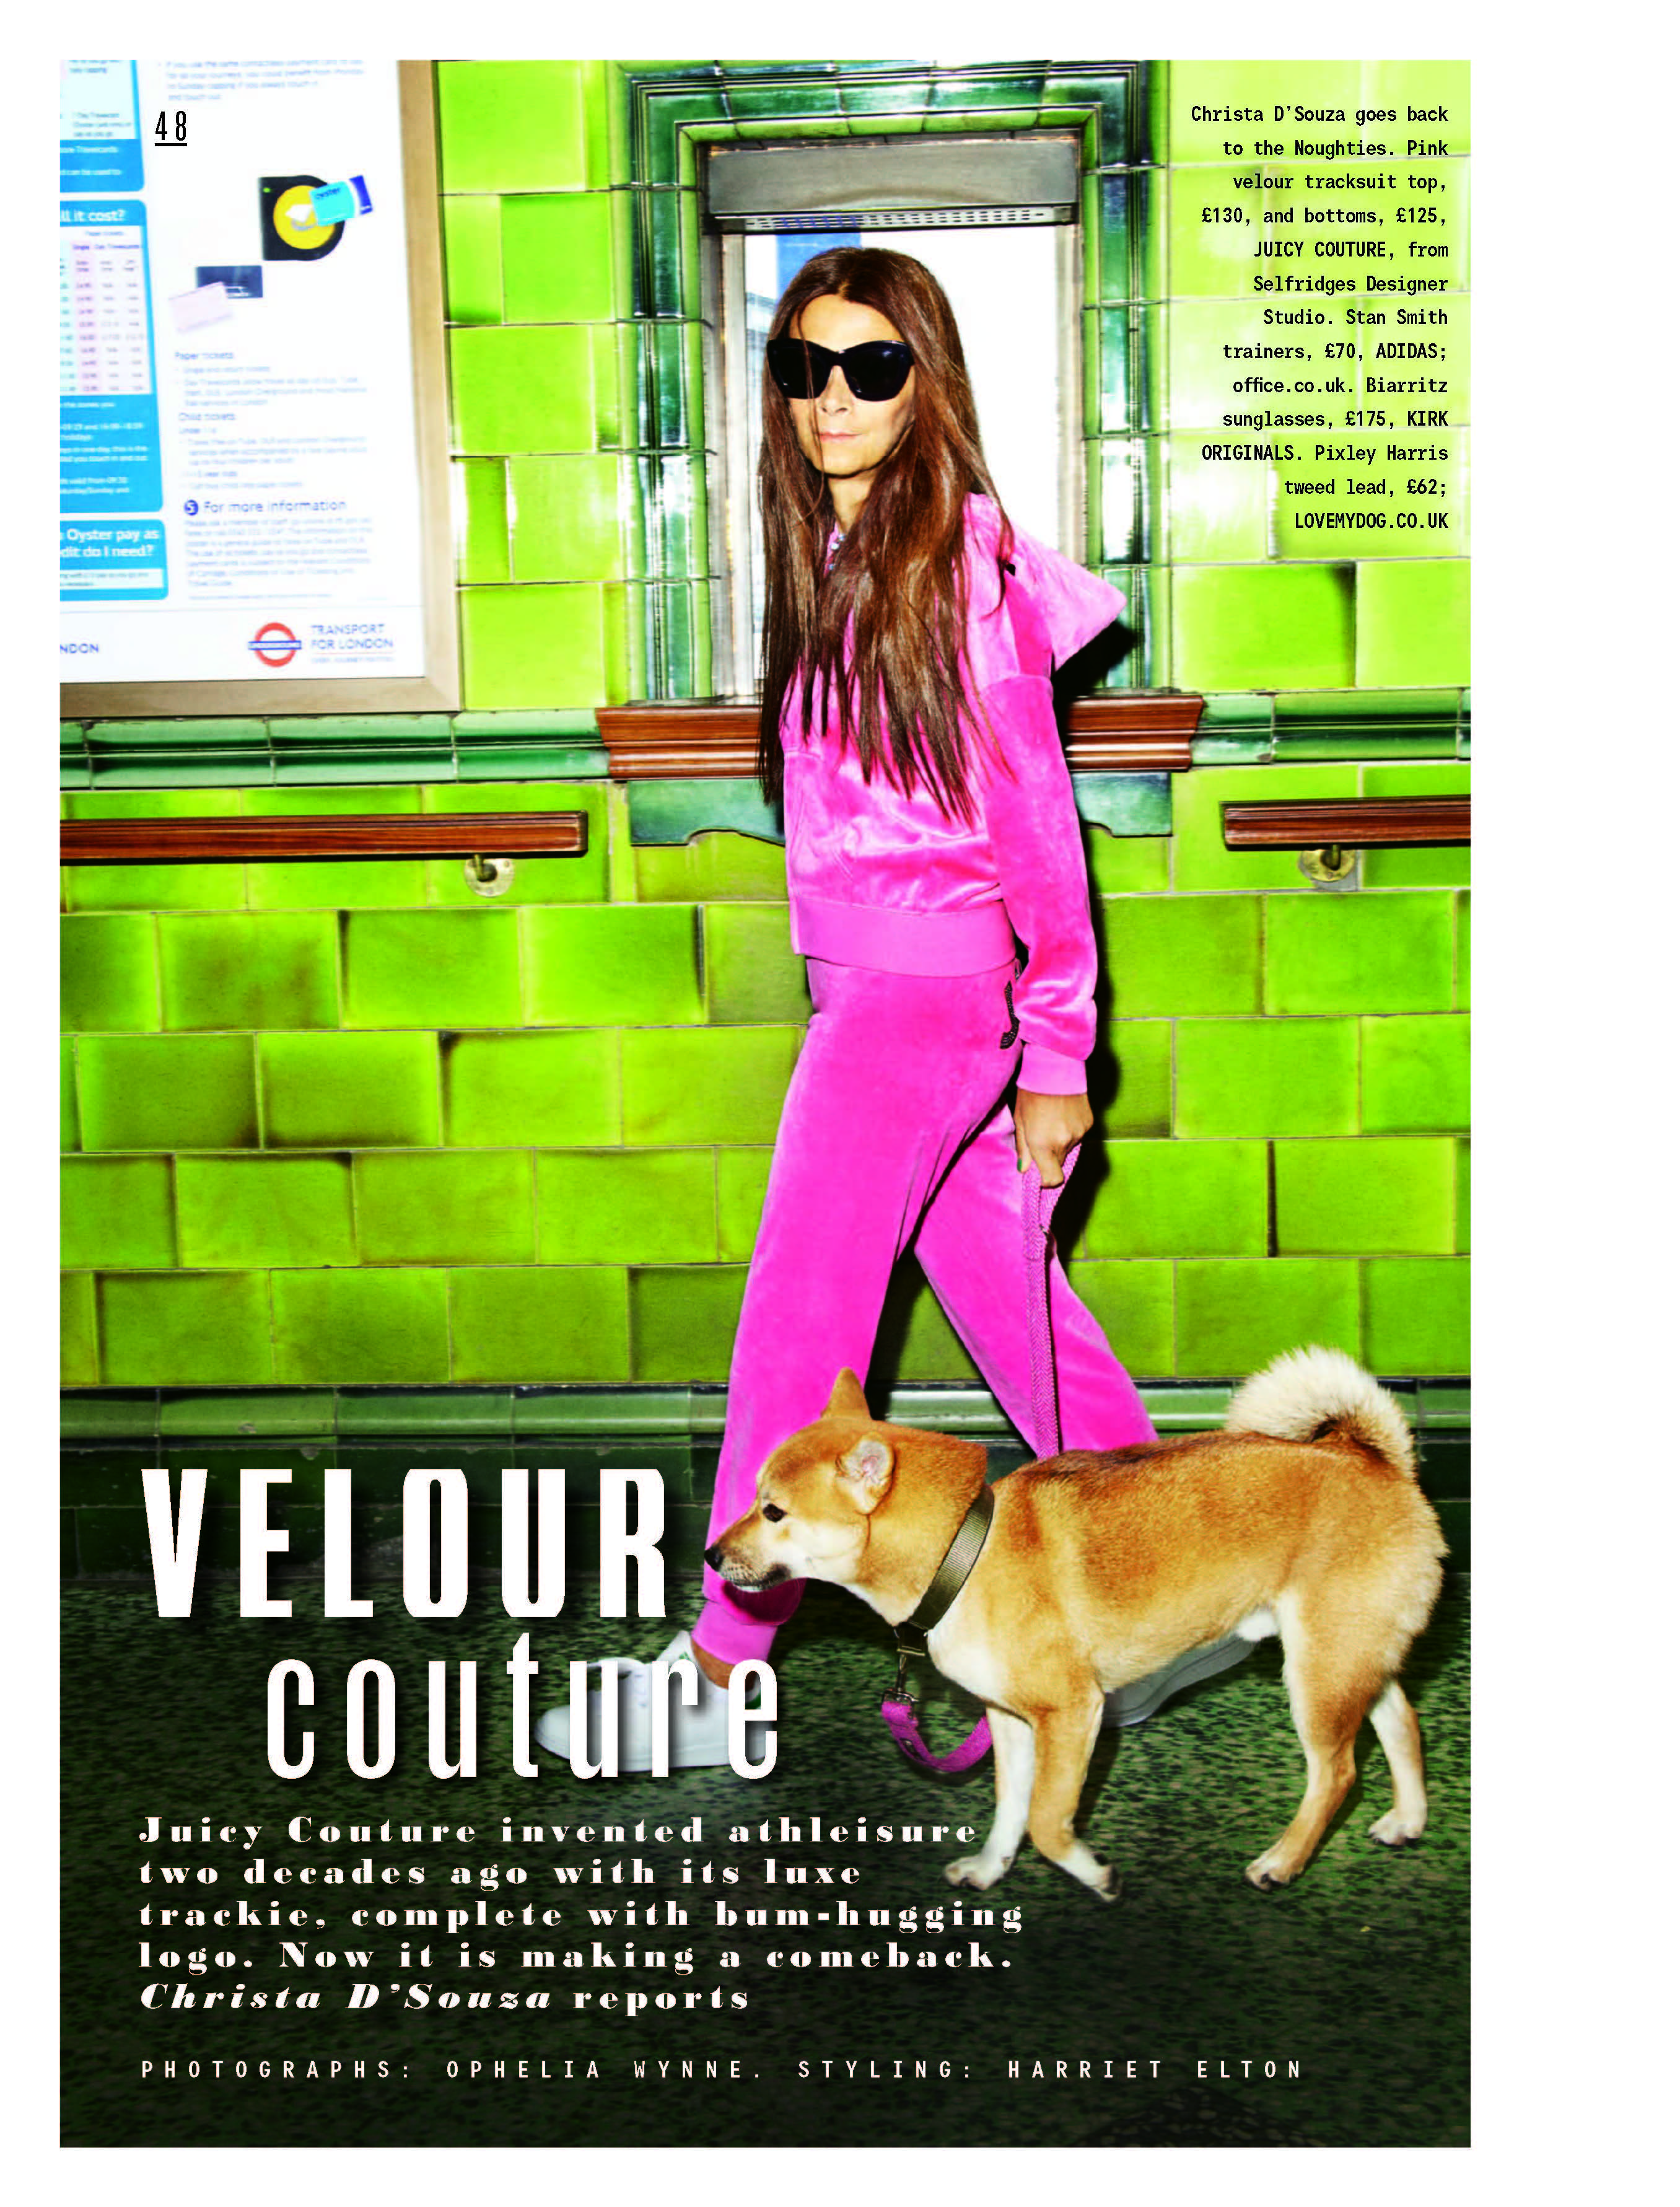 dog, dogs, style, magazine, press, editorial, couture, velour